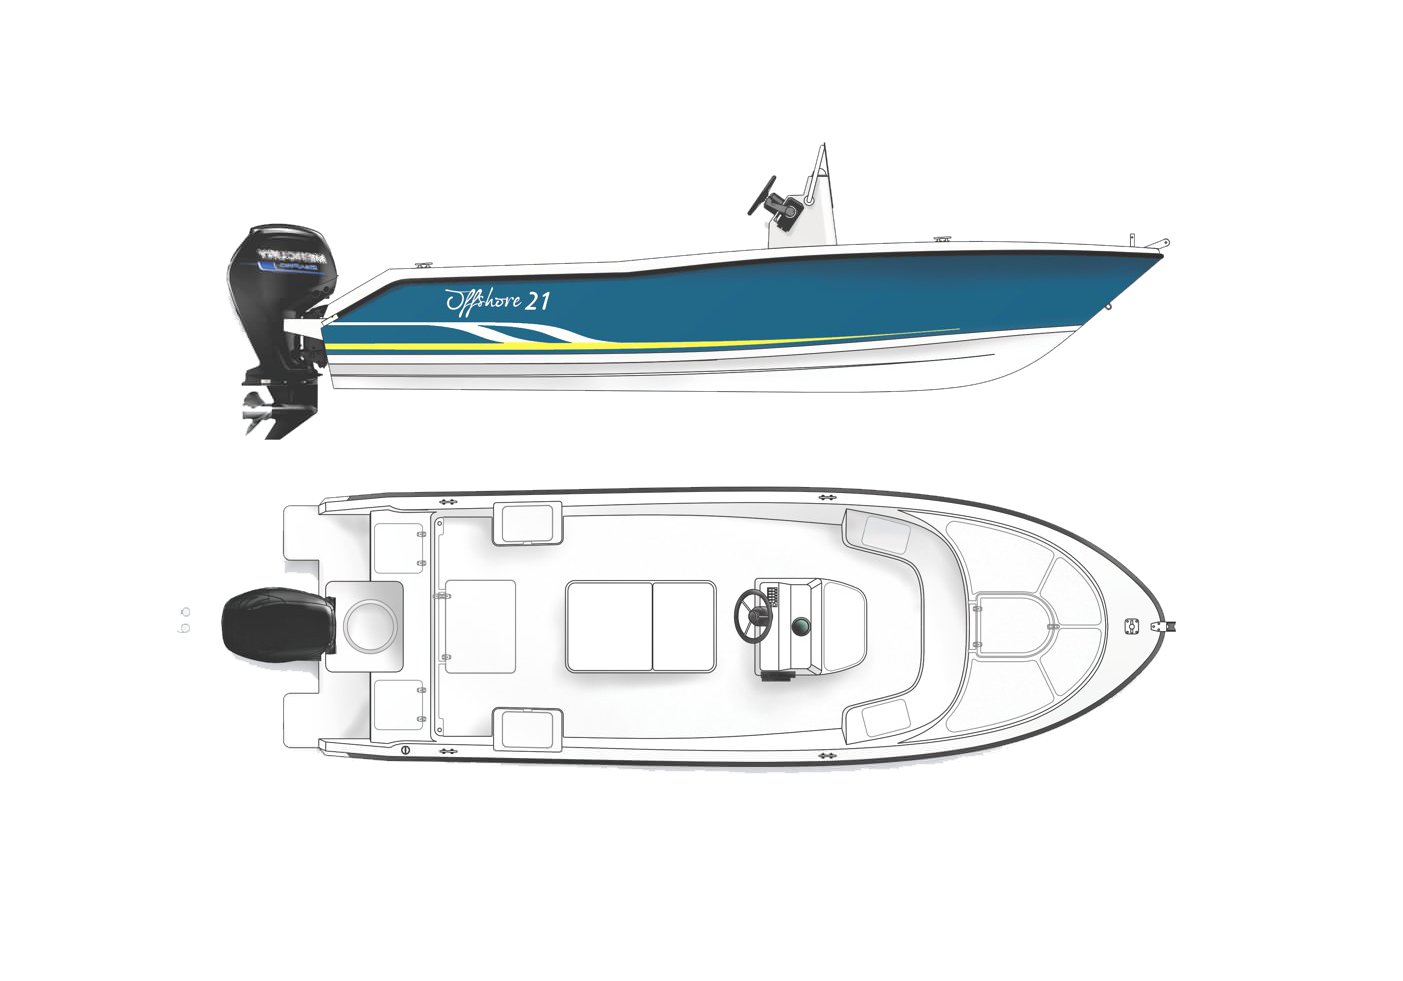 vector freeuse stock Yacht clipart dinghy. Offshore yachts a good